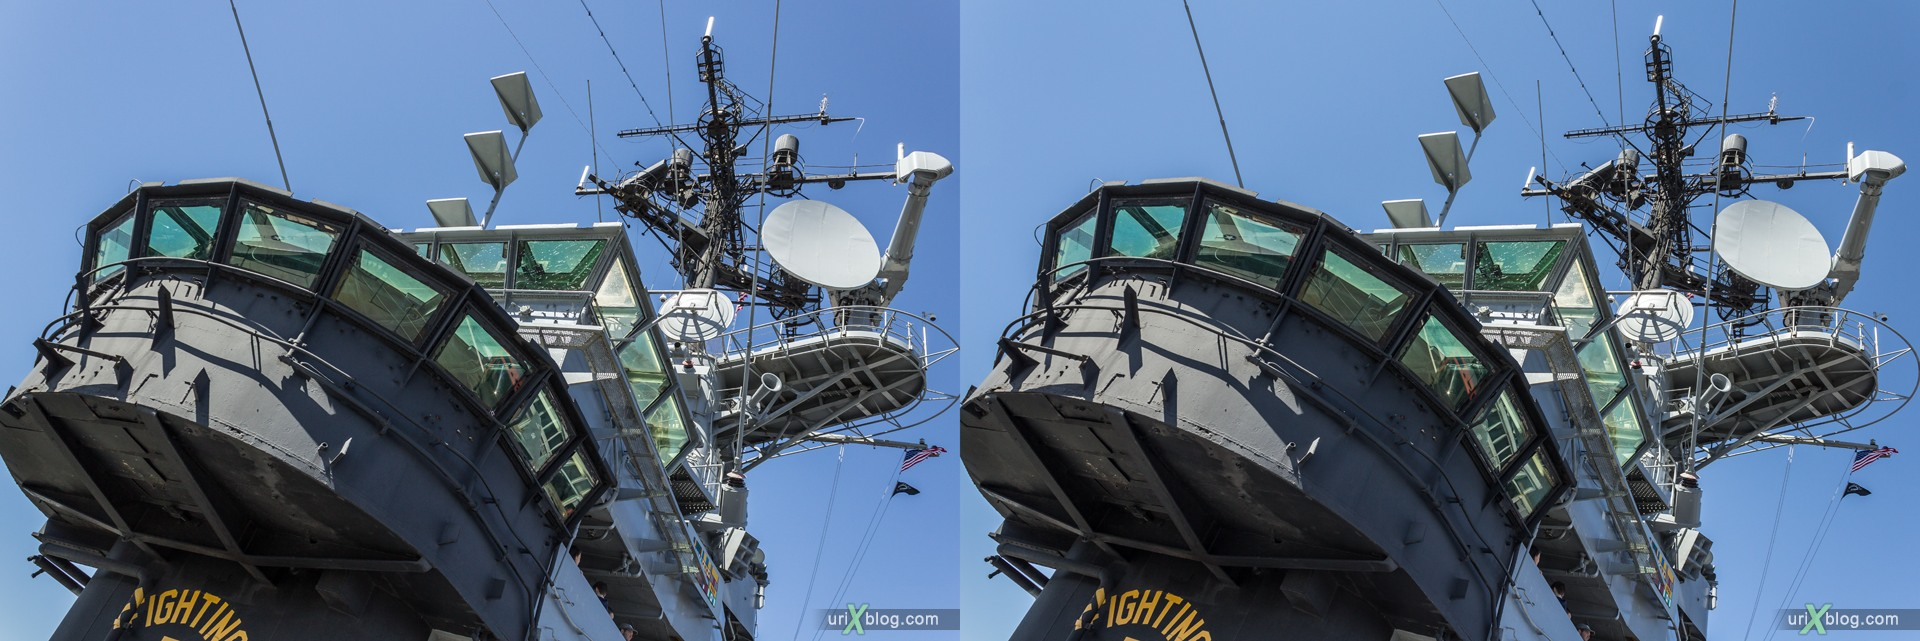 2013, USA, NYC, New York, aircraft carrier Intrepid museum, Island, sea, air, space, ship, submarine, aircraft, airplane, helicopter, military, 3D, stereo pair, cross-eyed, crossview, cross view stereo pair, stereoscopic